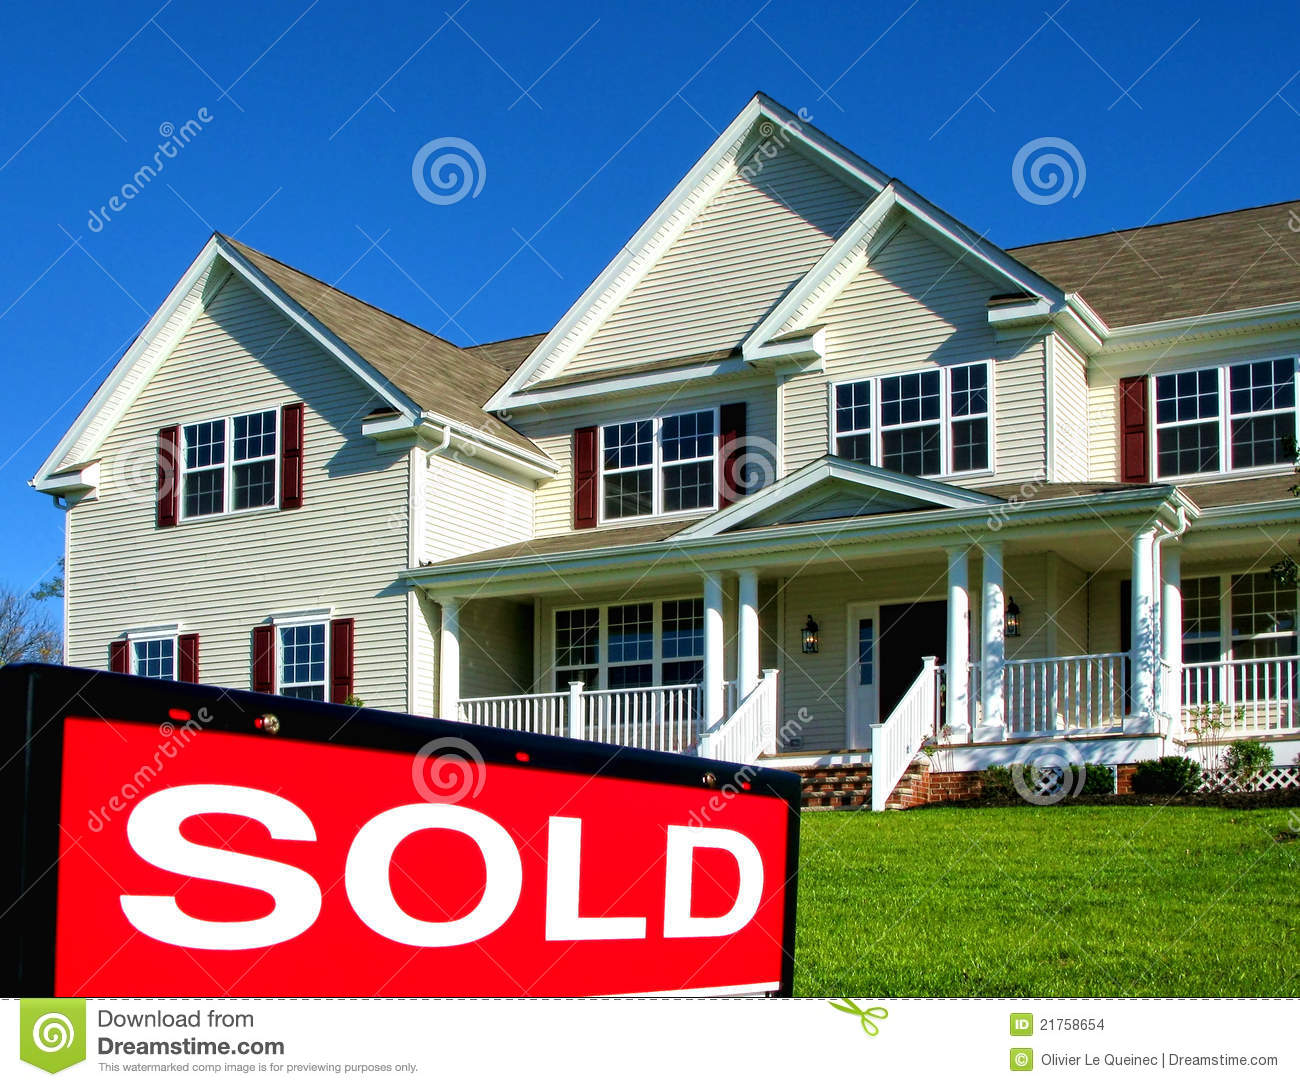 Real estate realtor sold sign and house for sale stock for House for sale pictures